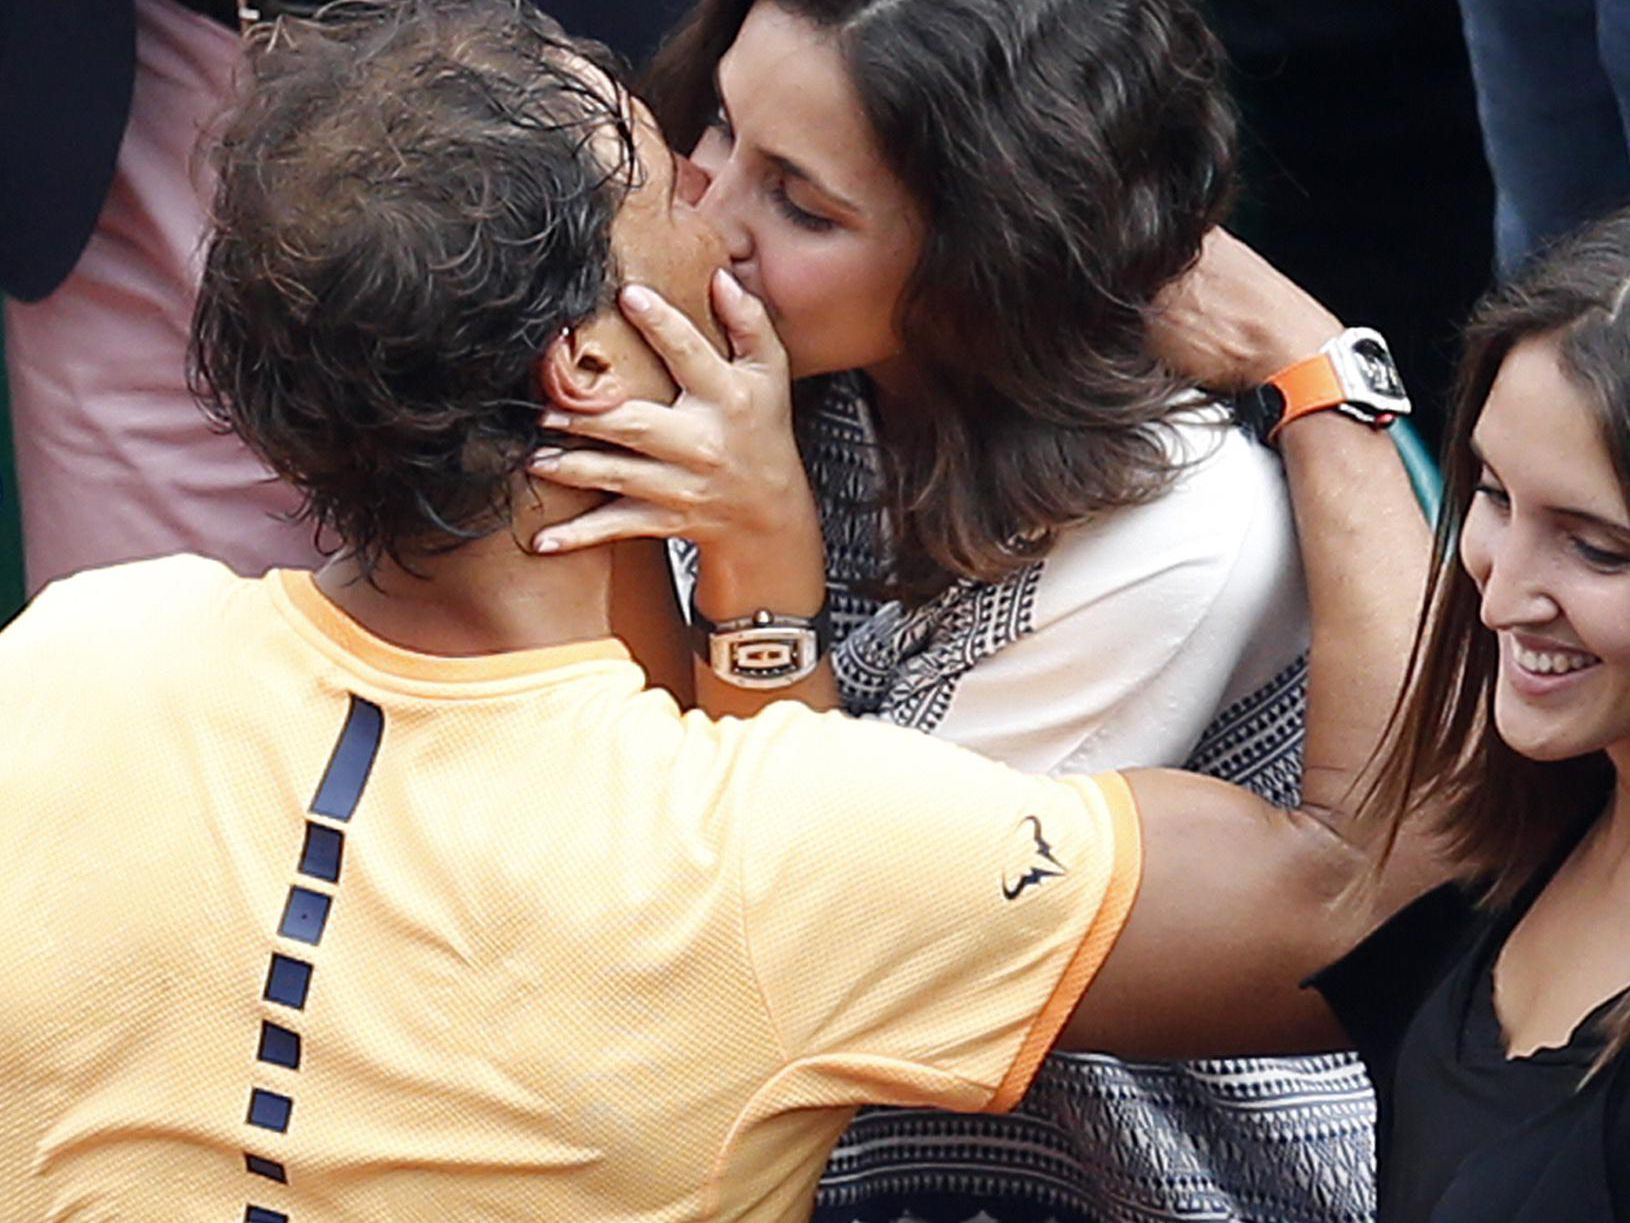 Tennis Star Rafael Nadal Is Engaged To Longtime Love Mery Xisca Perello